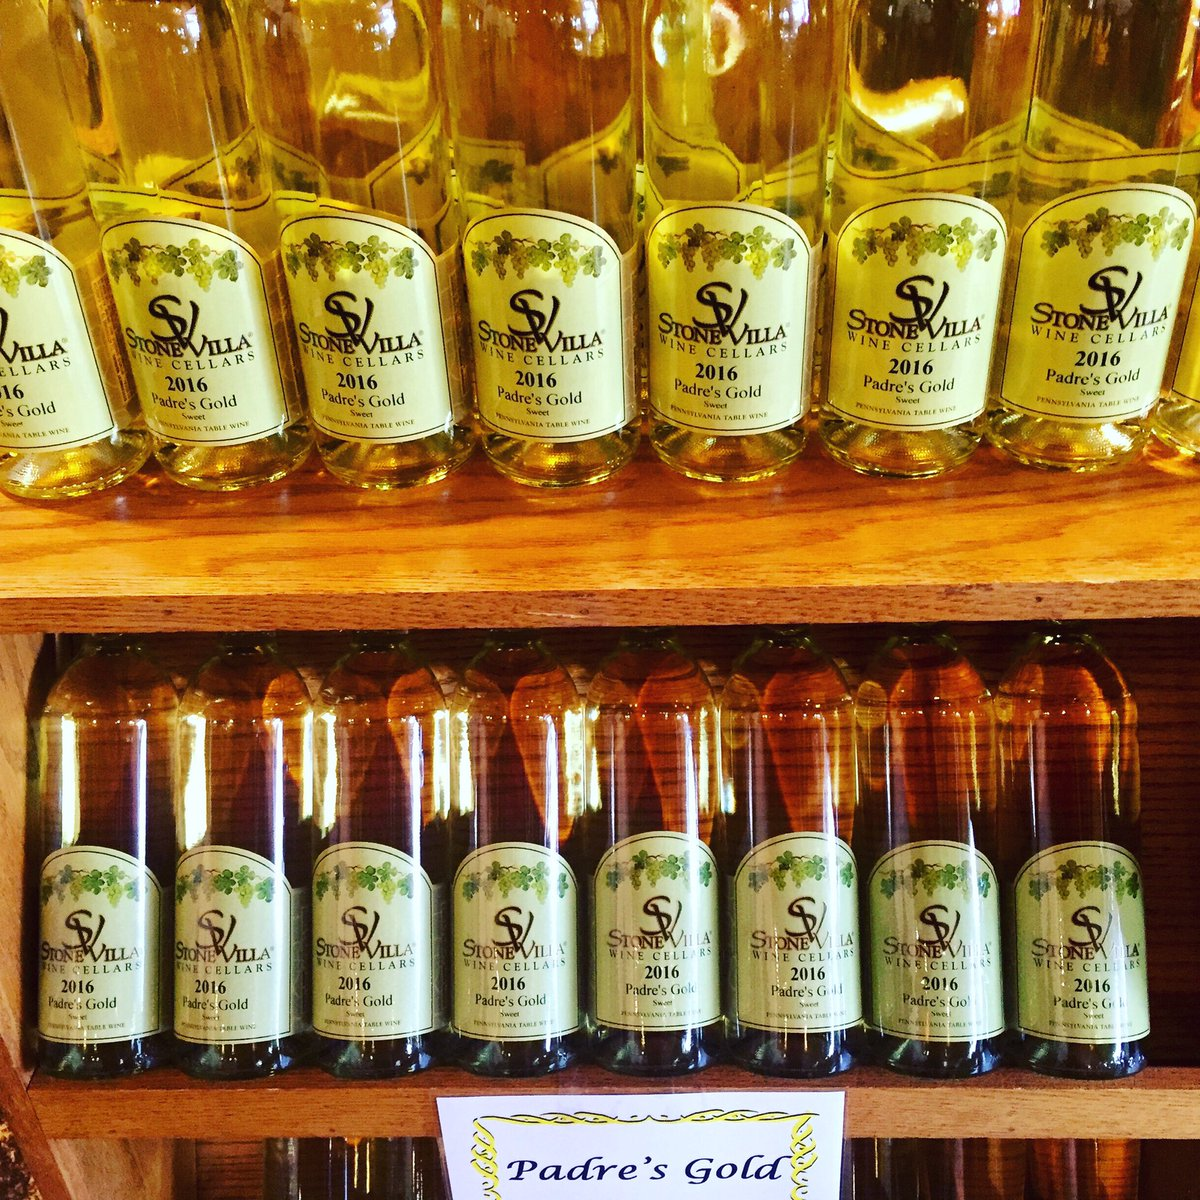 stone villa winery on twitter now available padres gold goforgold stonevilla pawine